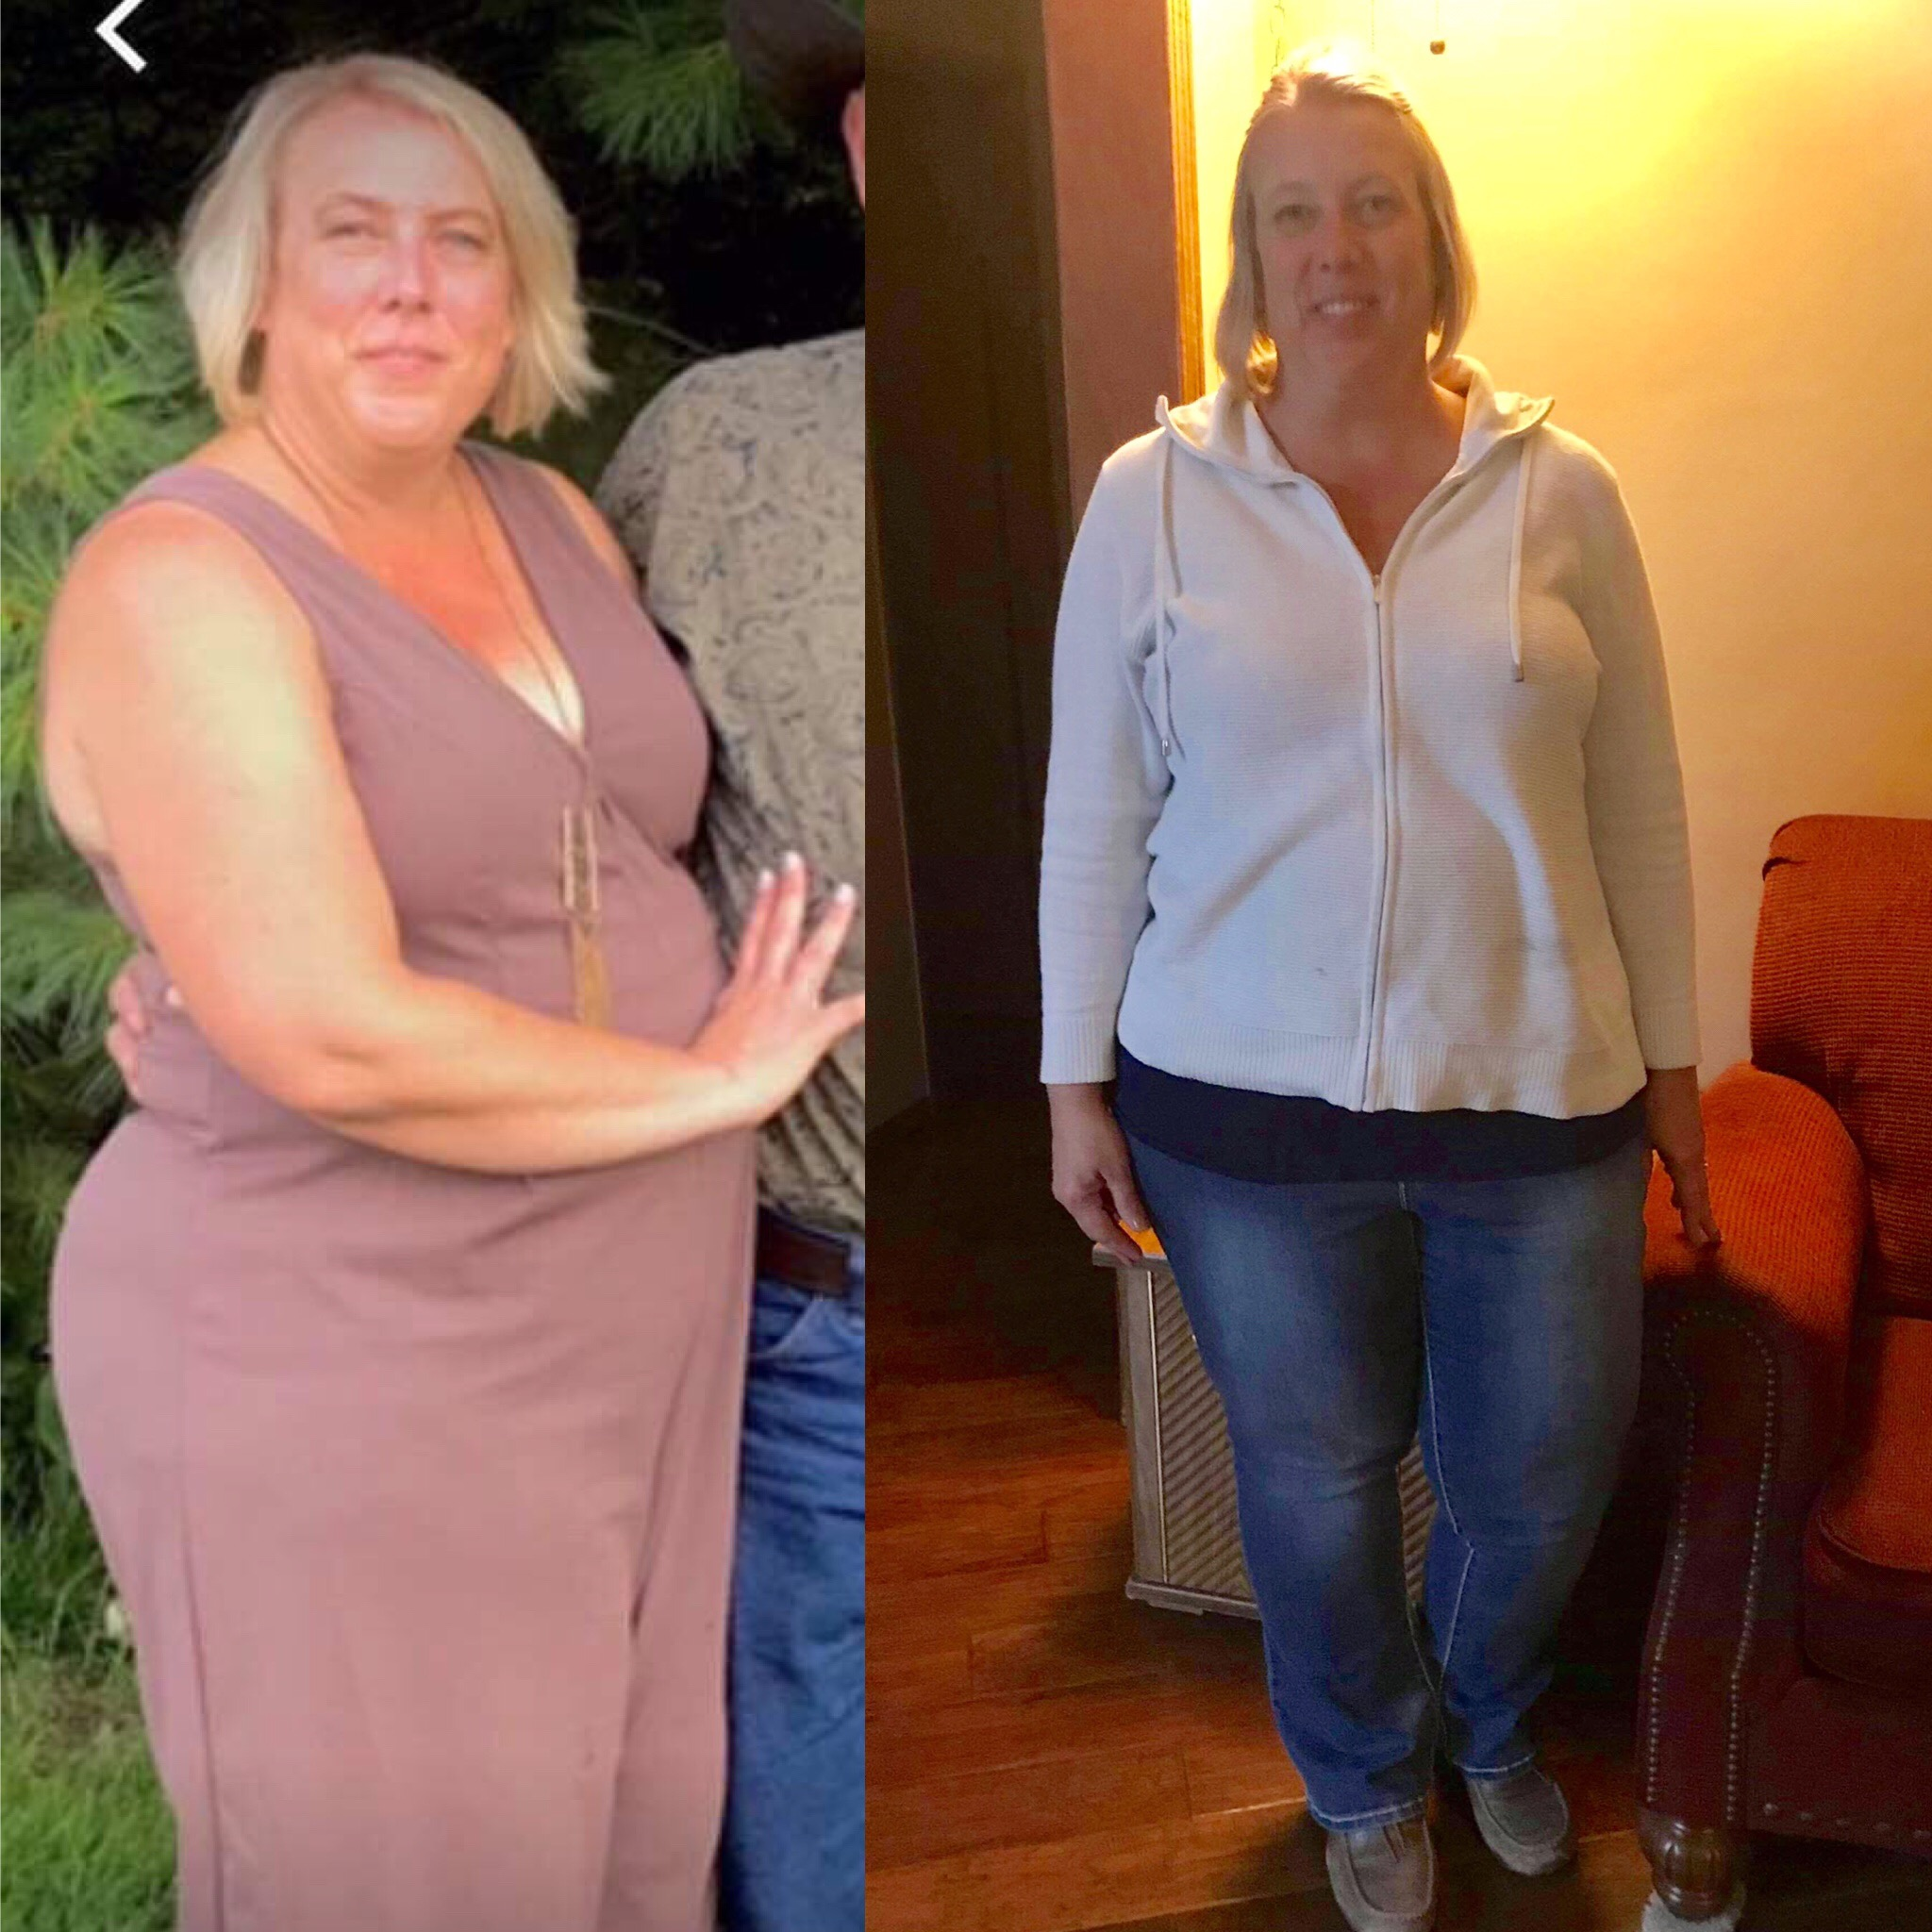 Tracy Lost 12 Pounds in 4 Weeks with the 30 Day Clean Eating